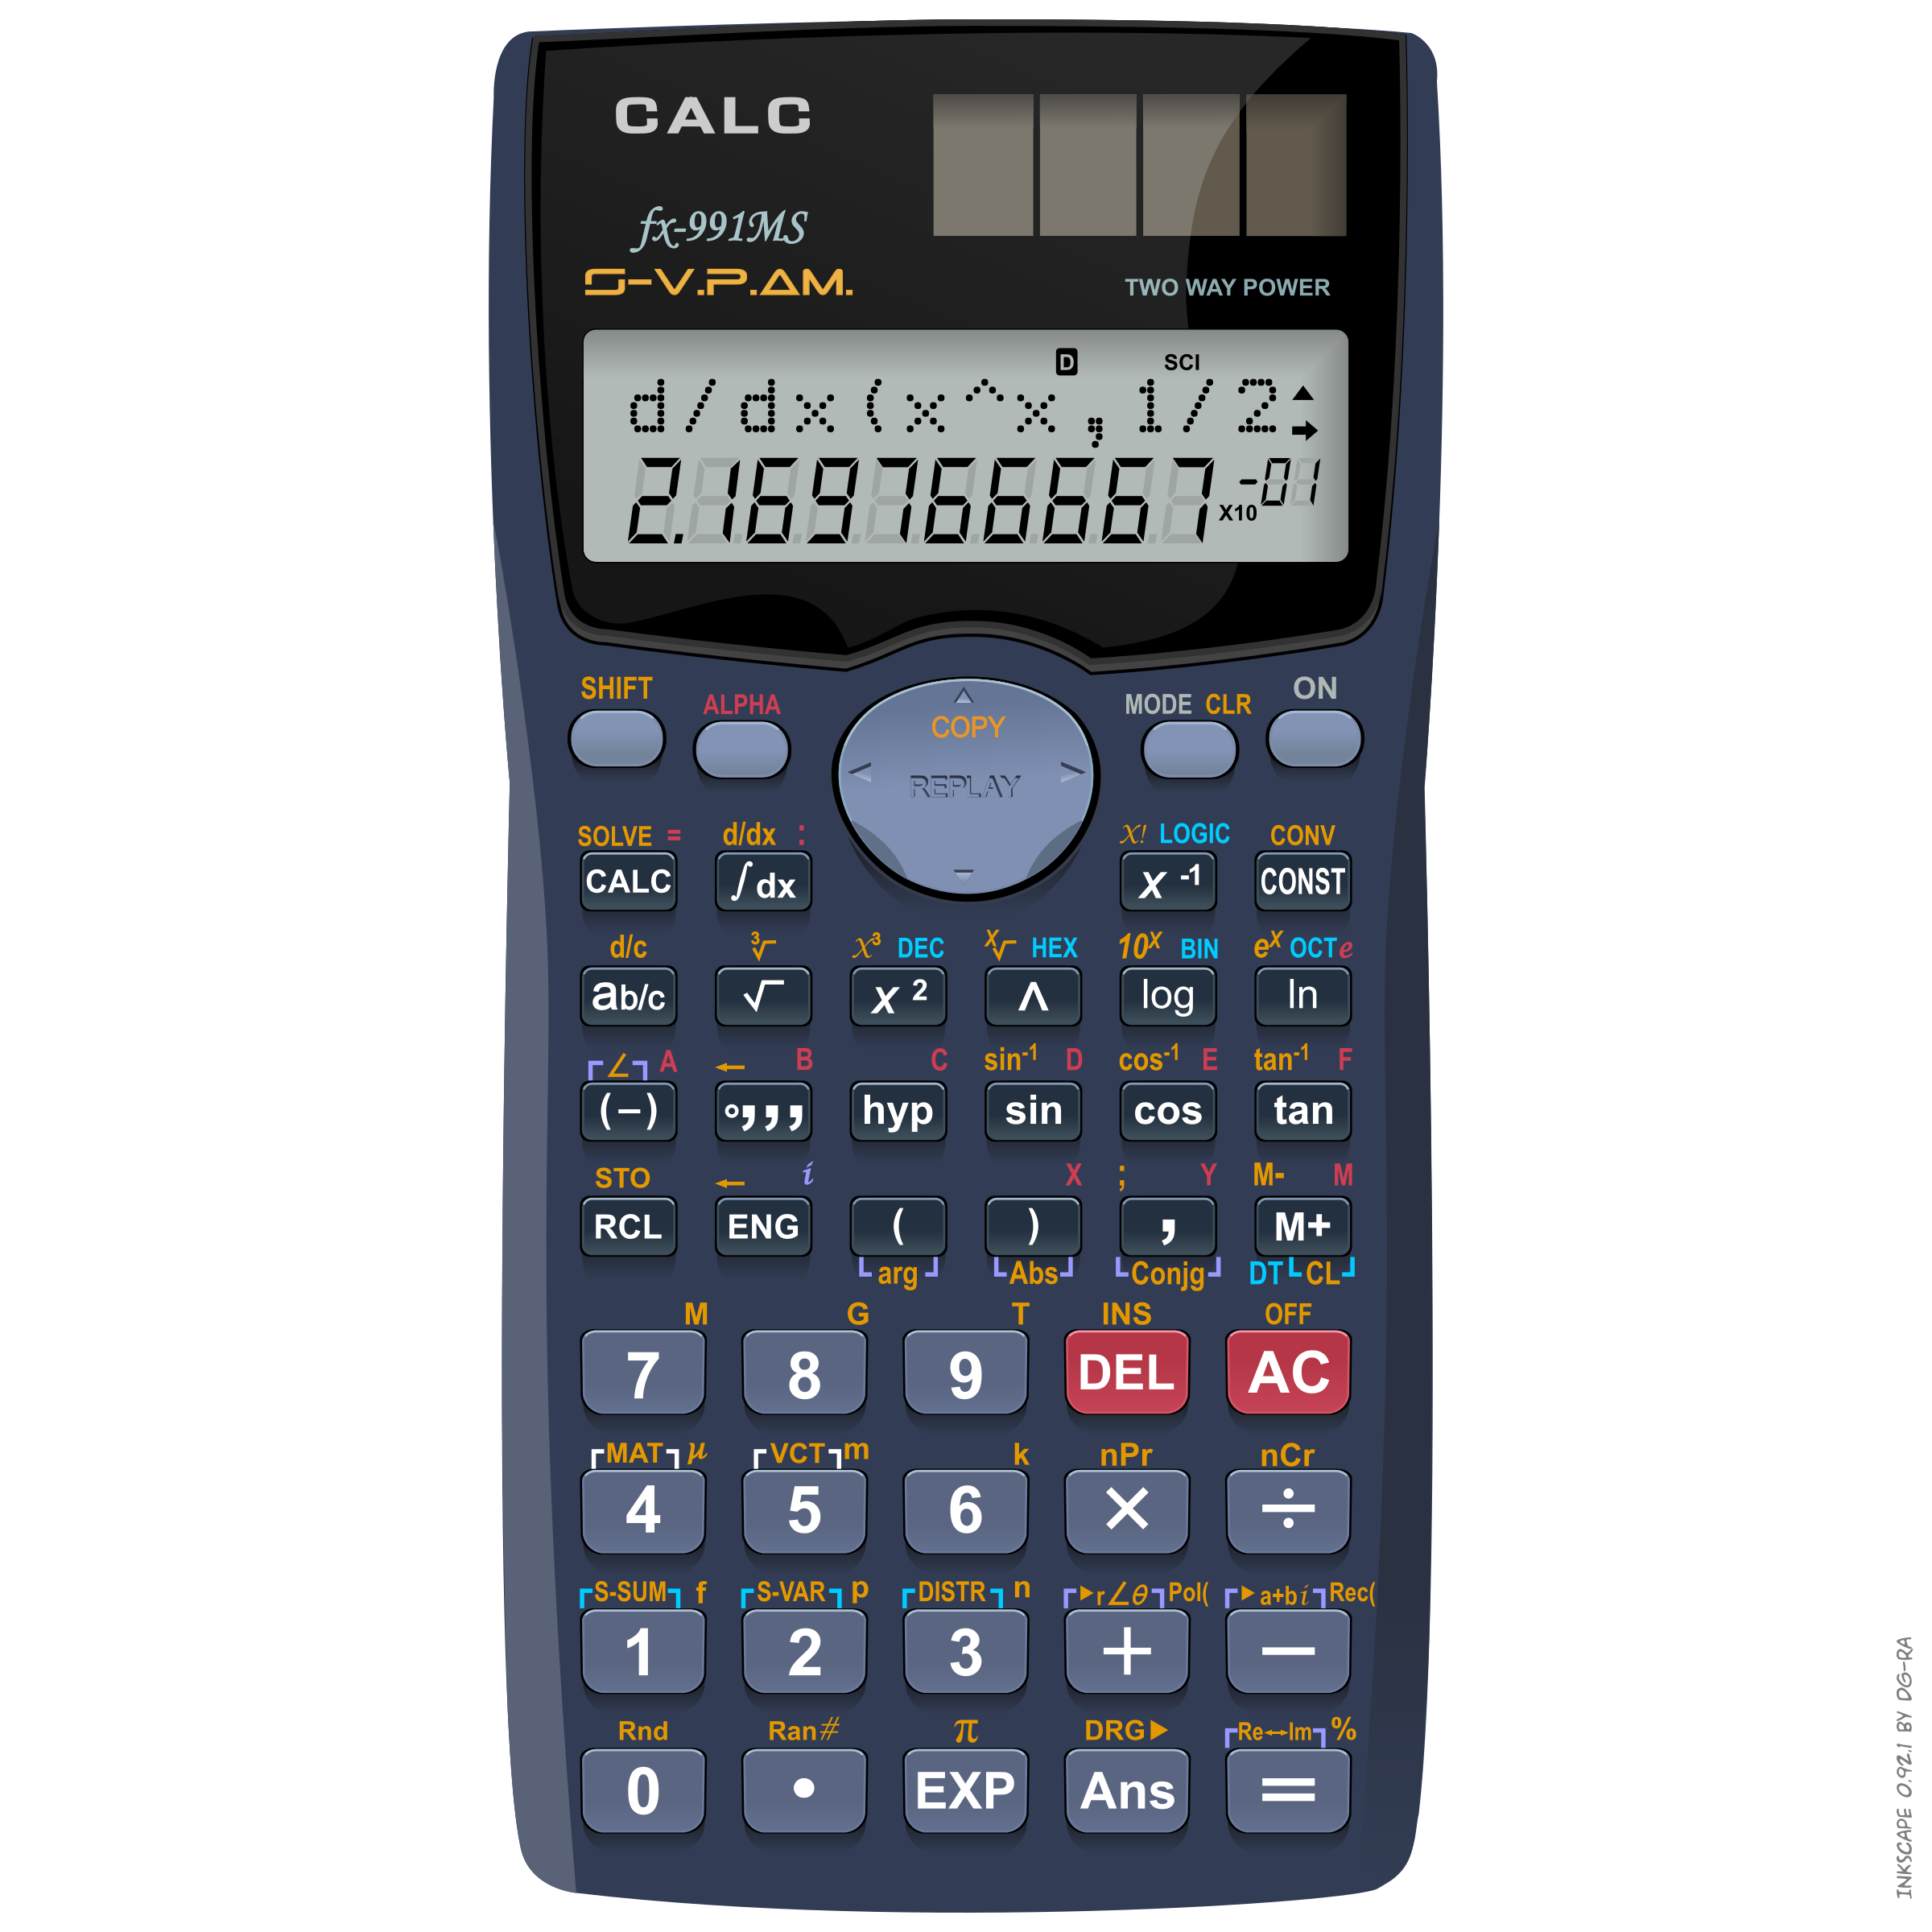 image royalty free library Calc fx ms big. Calculator clipart small